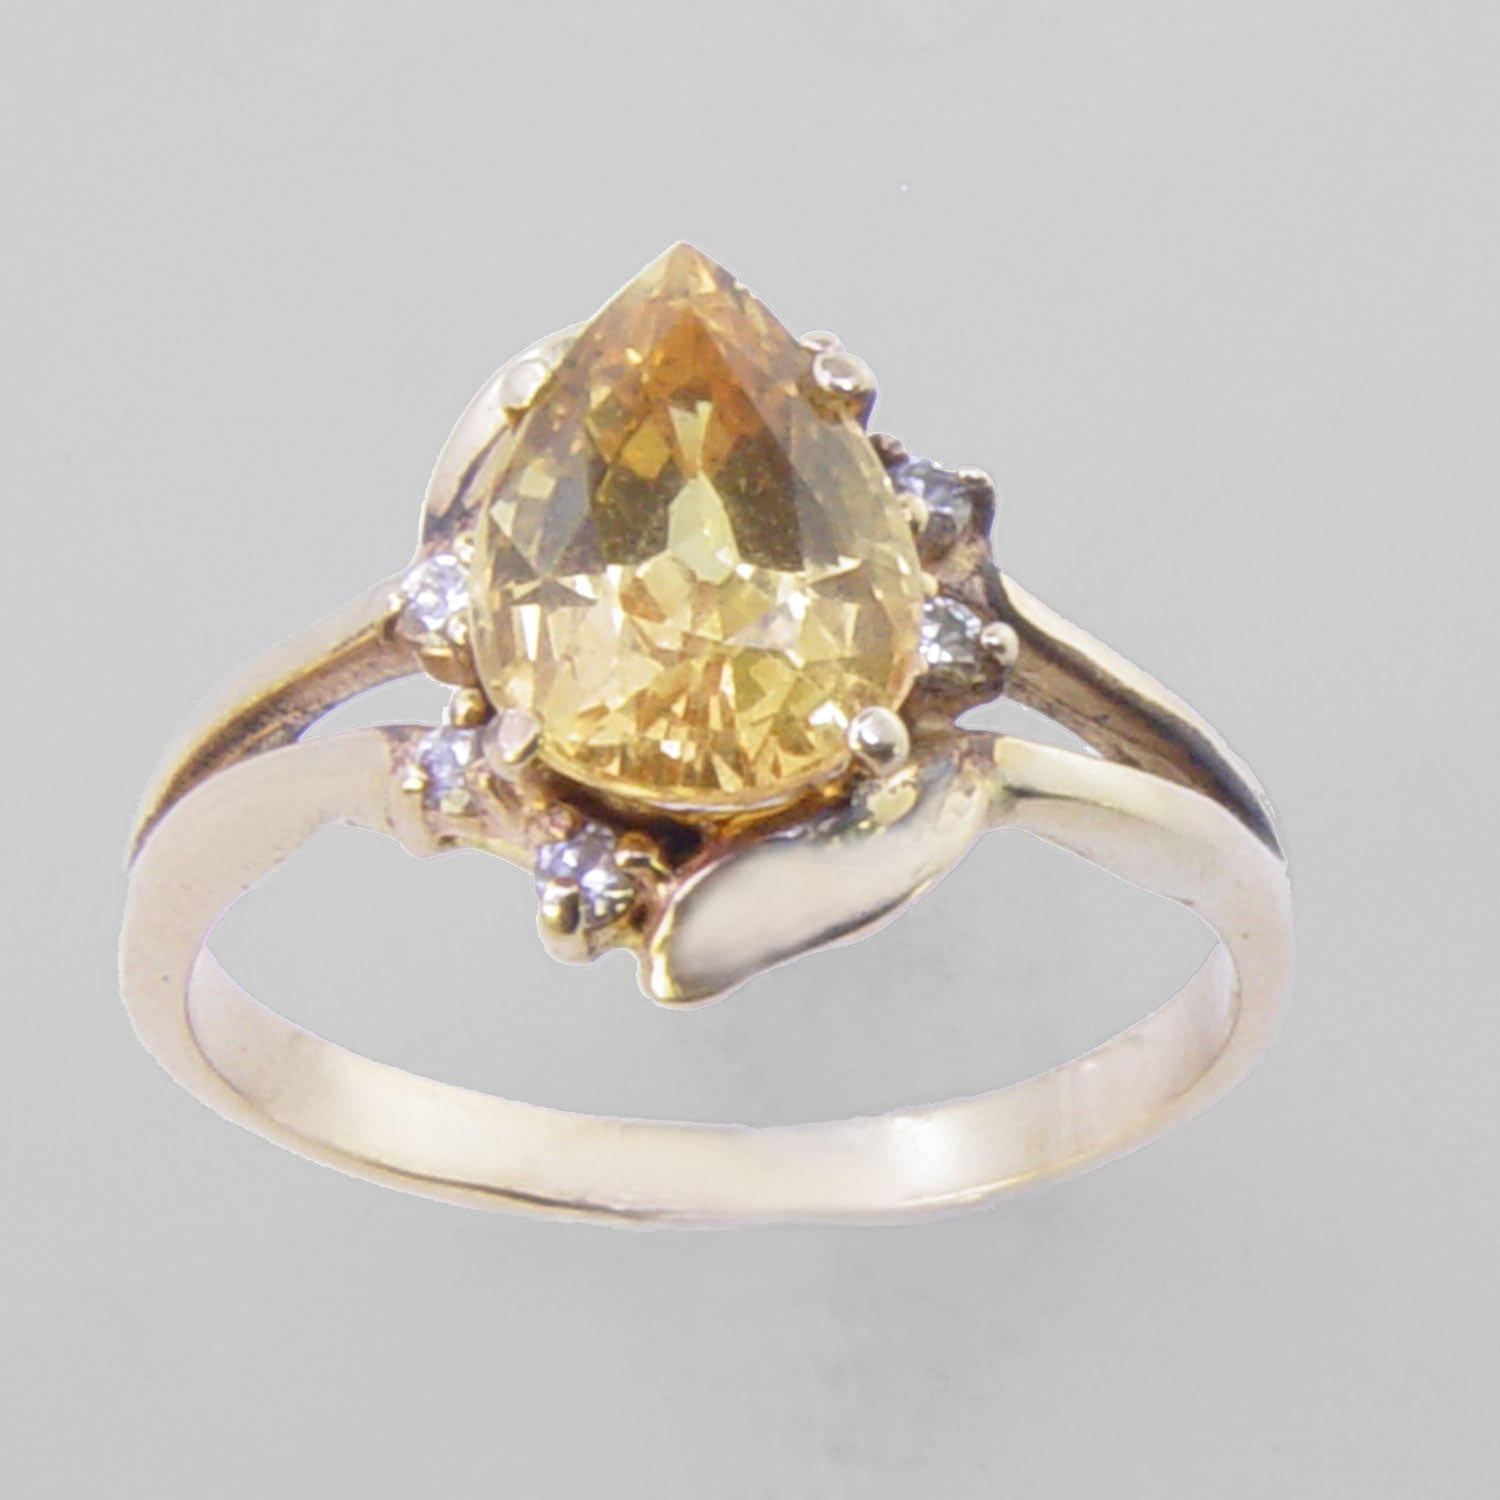 Yellow Sapphire 2.4 ct Faceted Pear With 6 Diamonds 14KY Gold Ring, Size 7